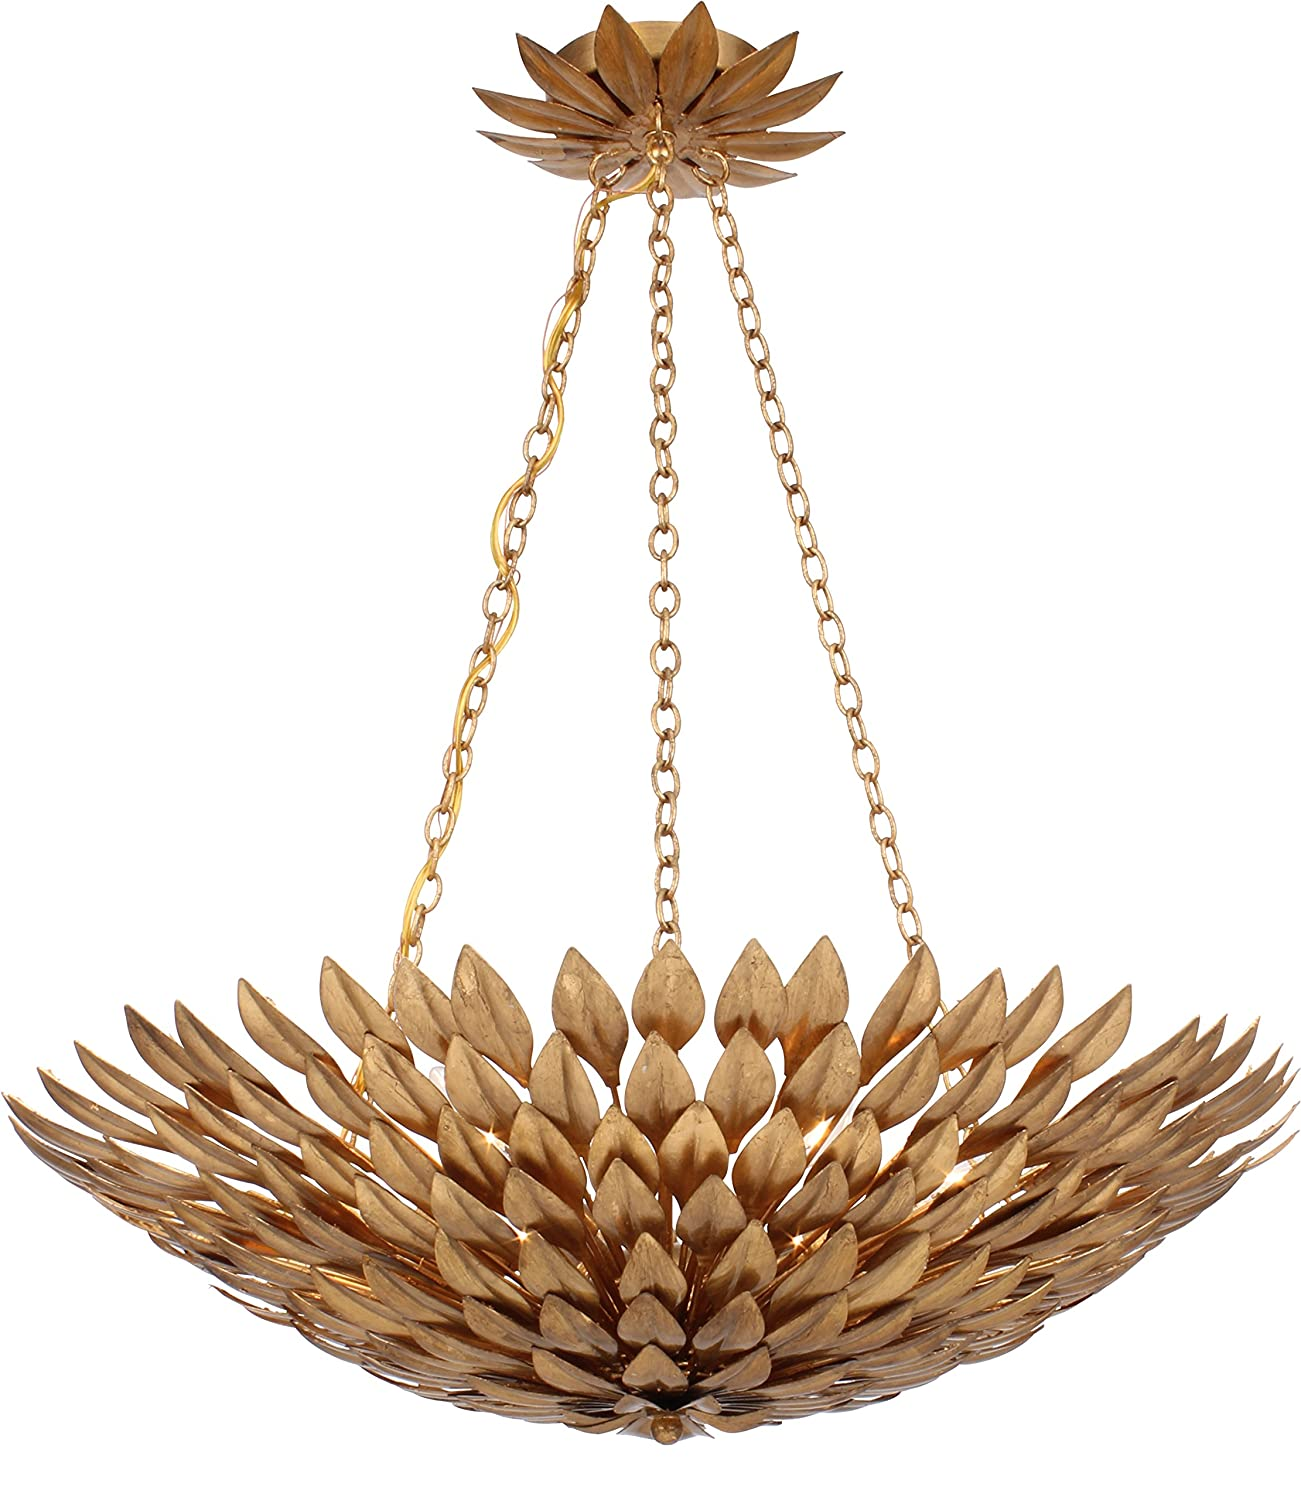 Crystorama 517-GA Leaf, Flower, Fruit Six Light Chandelier from Broche  collection in Gold, Champ, Gld Leaffinish, - Ceiling Pendant Fixtures -  Amazon.com - Crystorama 517-GA Leaf, Flower, Fruit Six Light Chandelier From